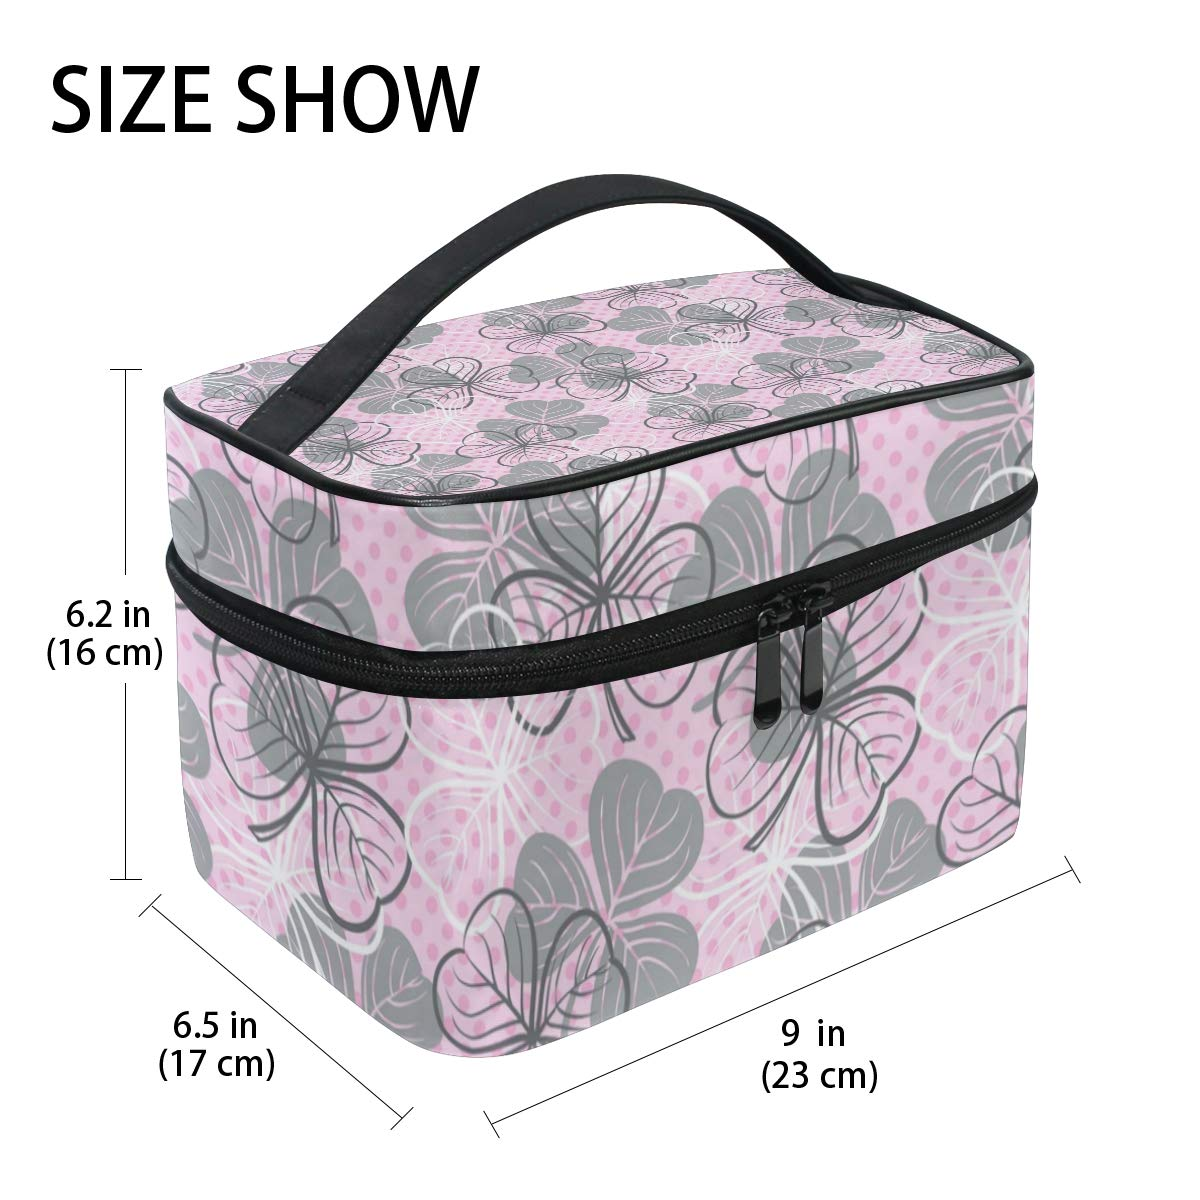 595c536dcc81 Amazon.com : Sexy St Patricks Day Lucky Clover Large Travel Toiletry ...